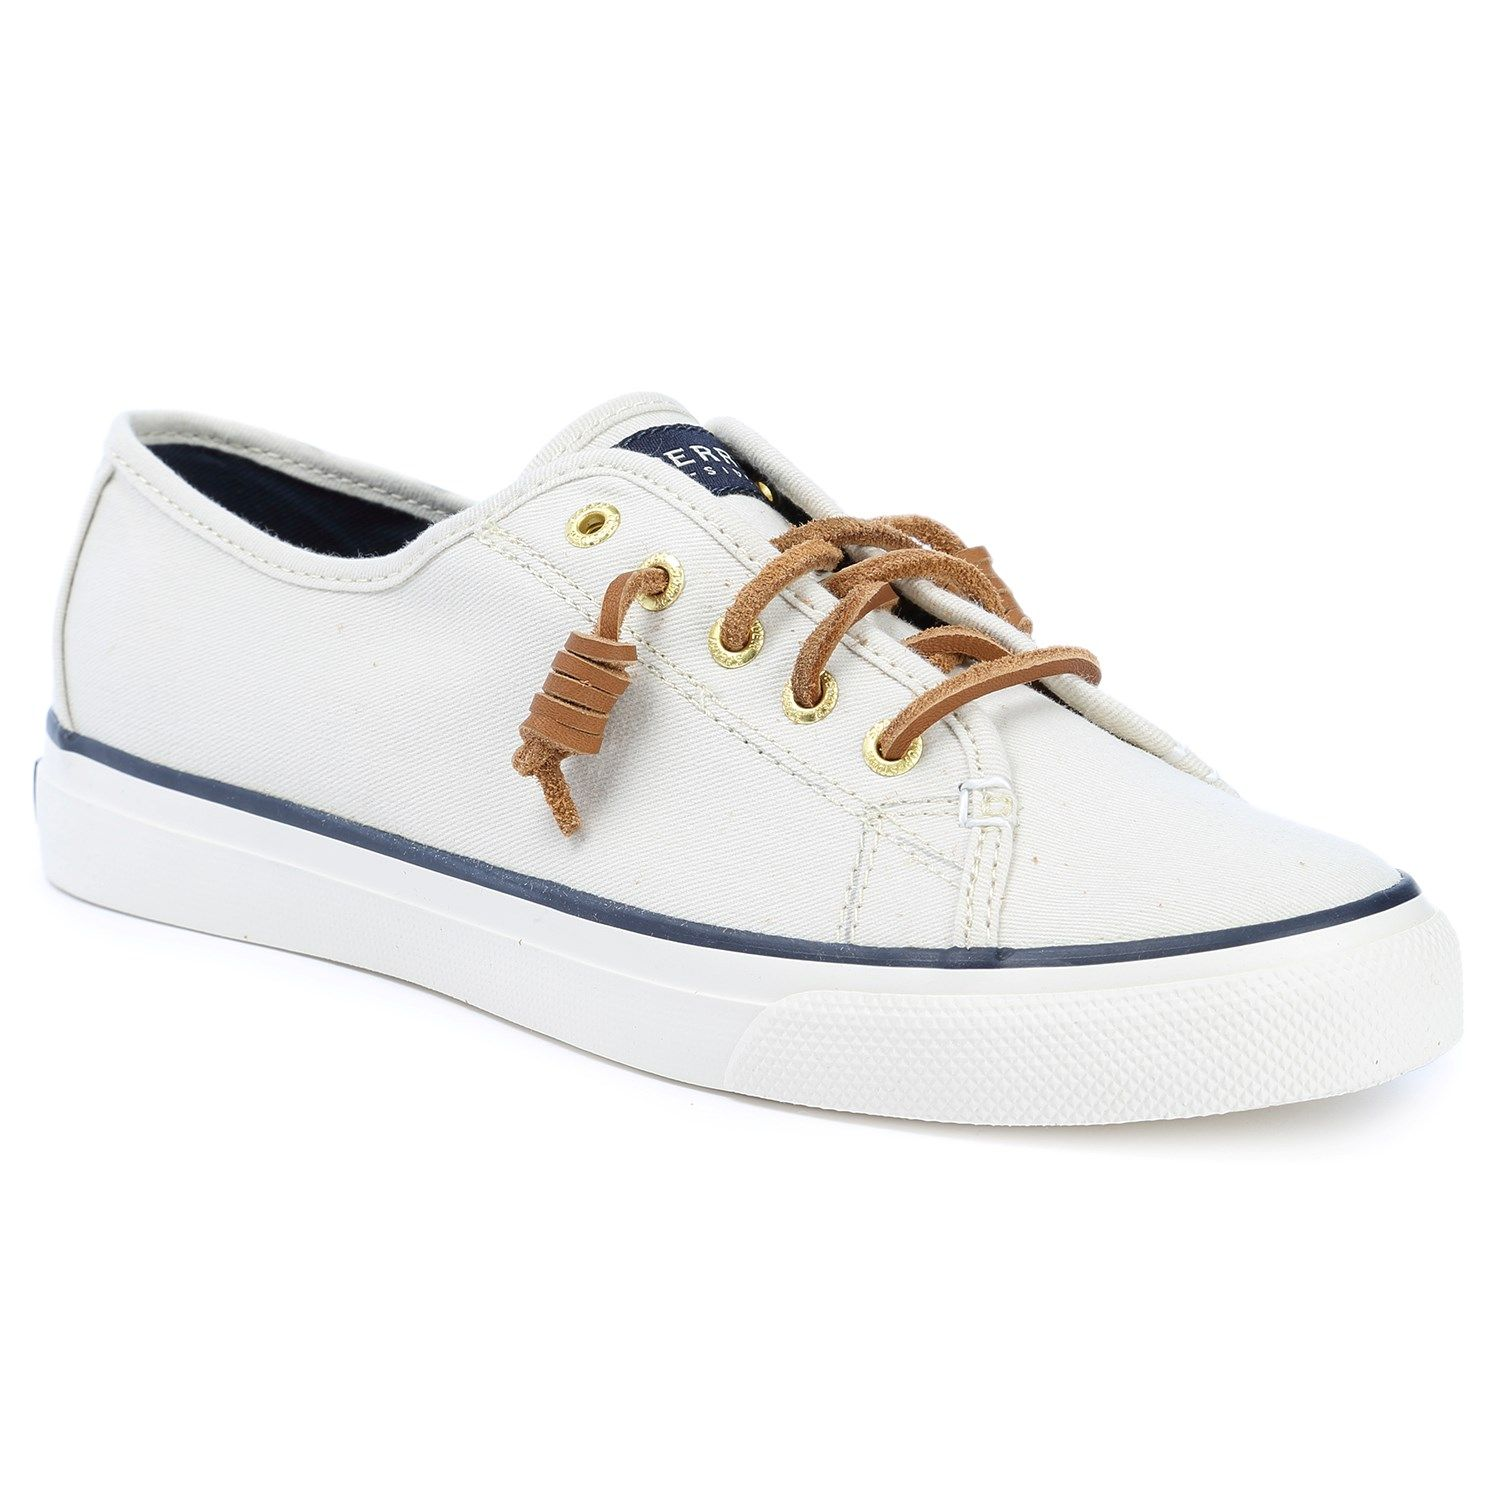 Sperry Top-Sider Seacoast Shoes - Women